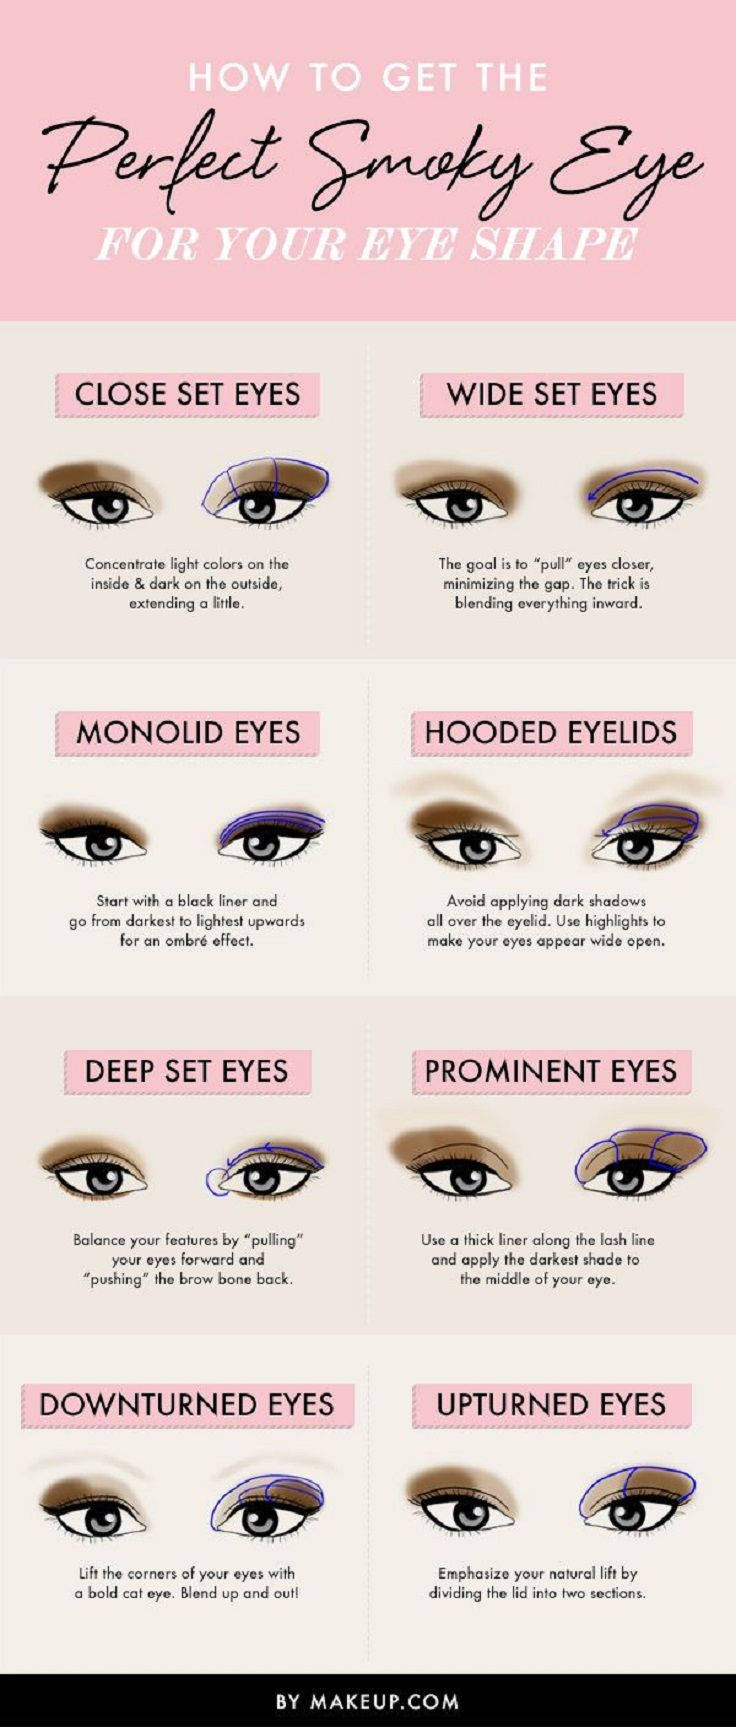 The Perfect Smoky Eye for Your Eye Shape - 13 Best Makeup Tutorials and Infographics for Beginners